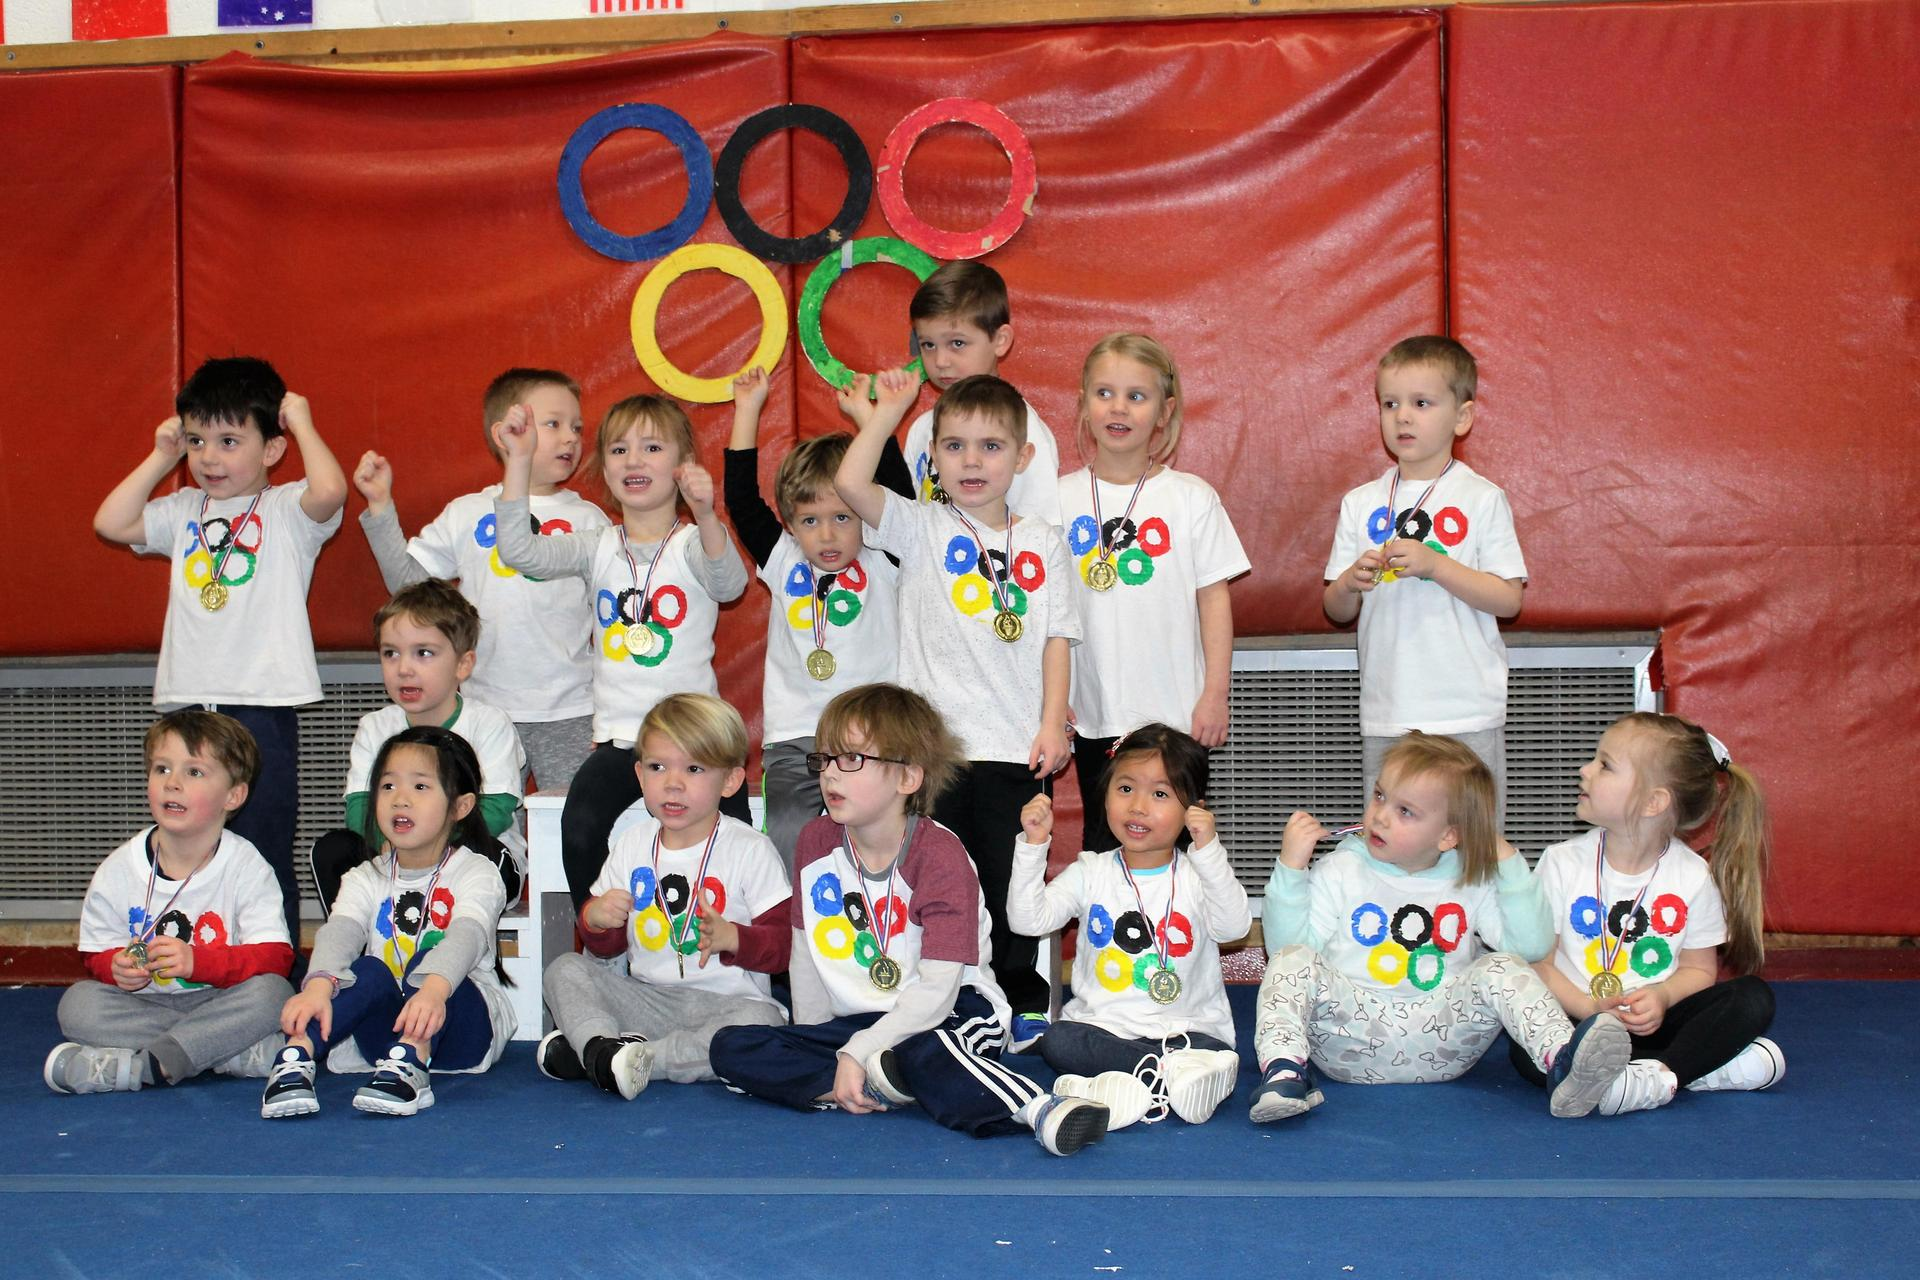 preschoolers sit in Olympics shirts